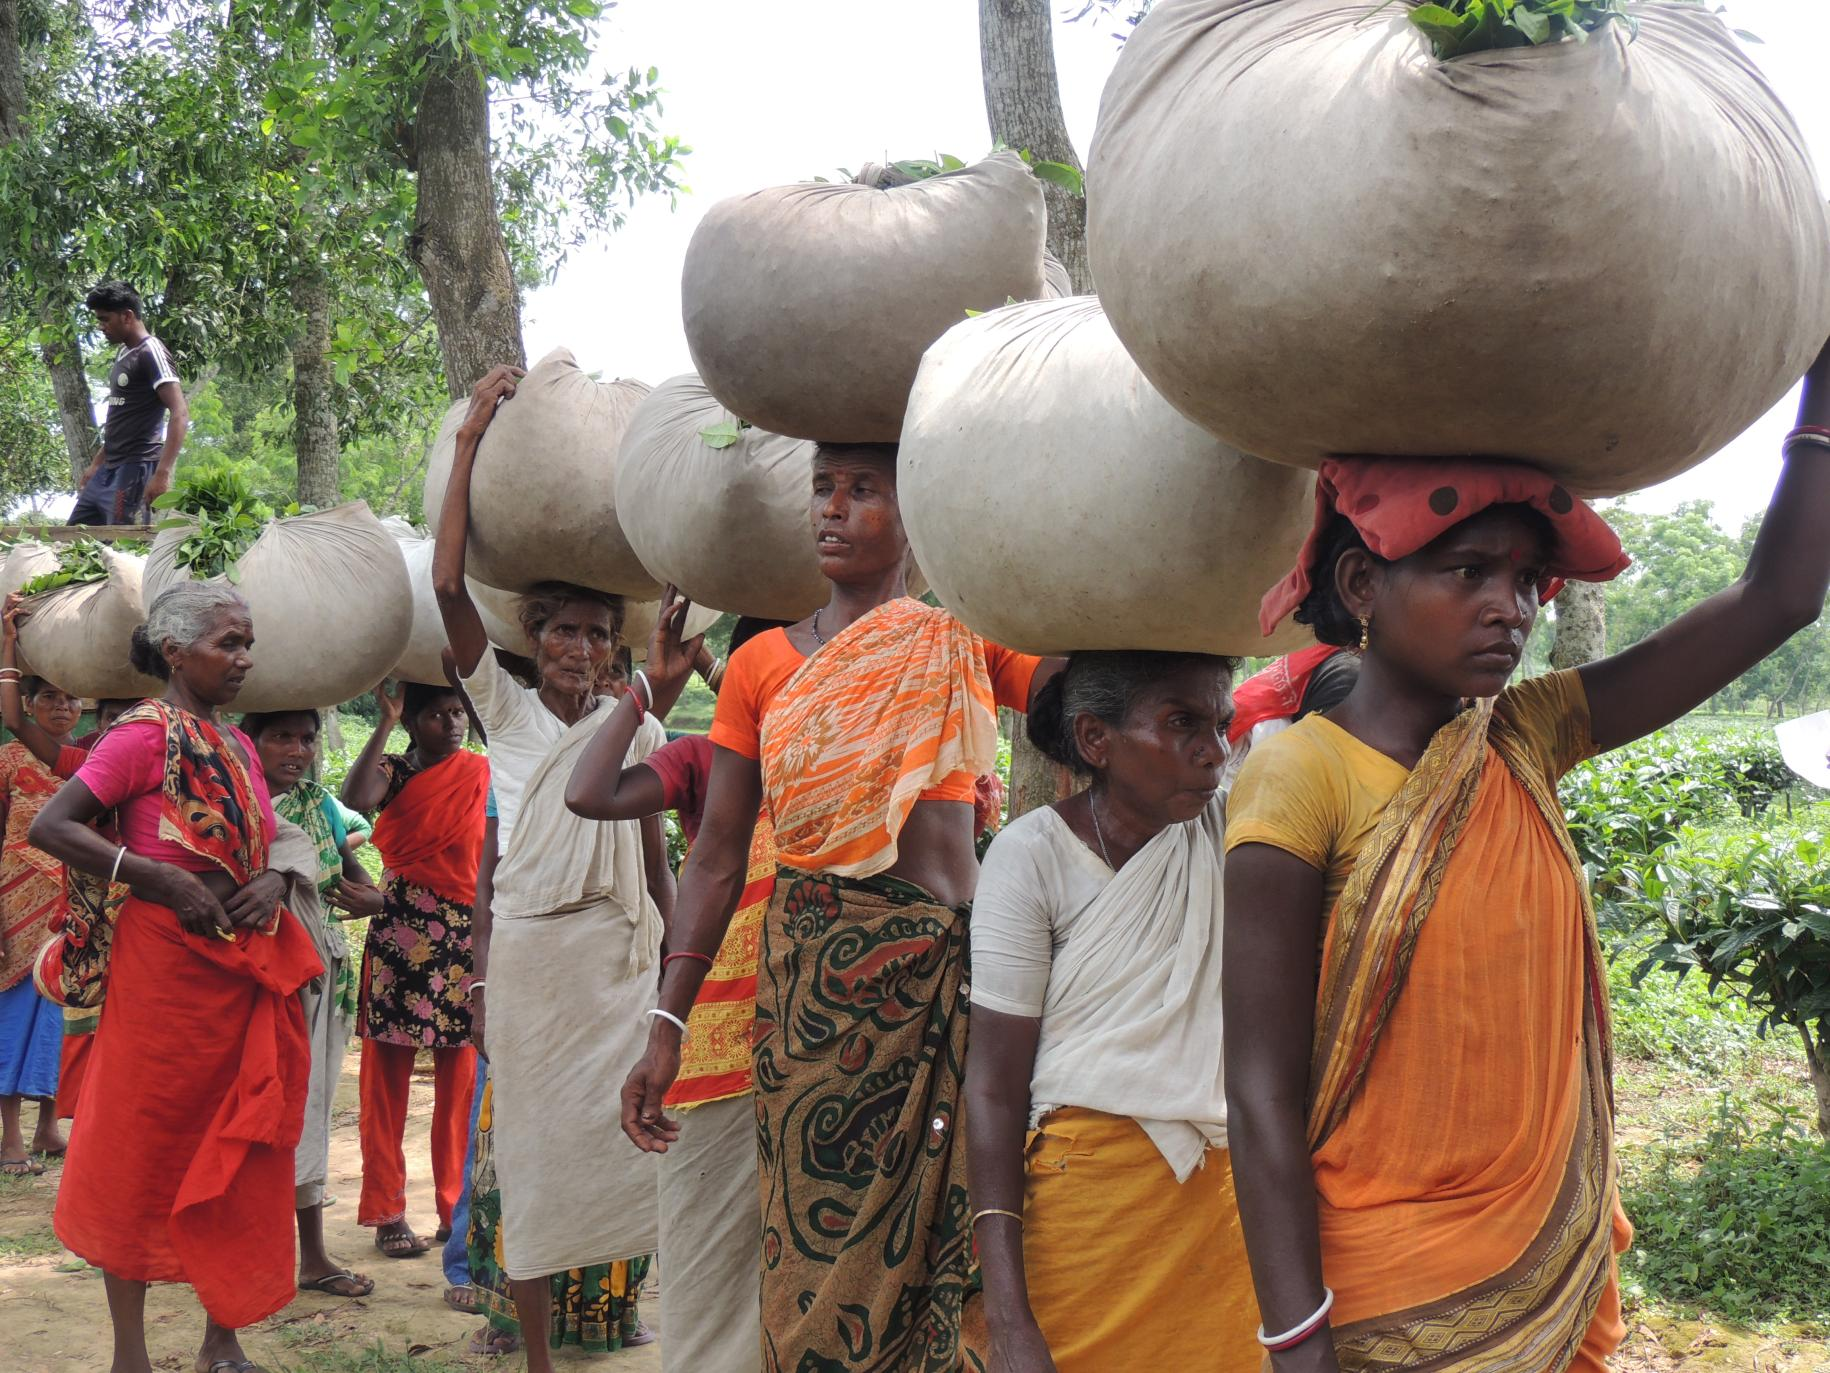 A line of women and girls hold large bags of tea on their heads.